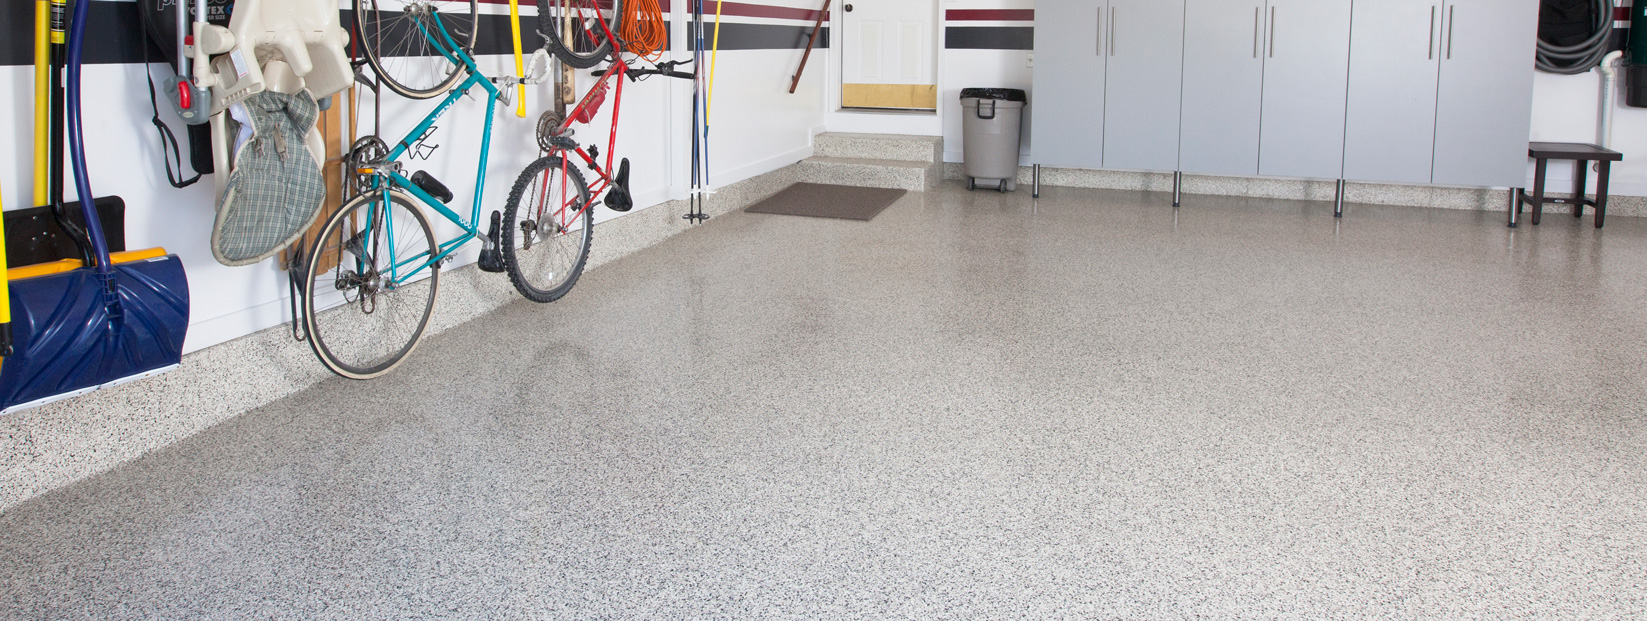 Garage Epoxy Floors Des Moines